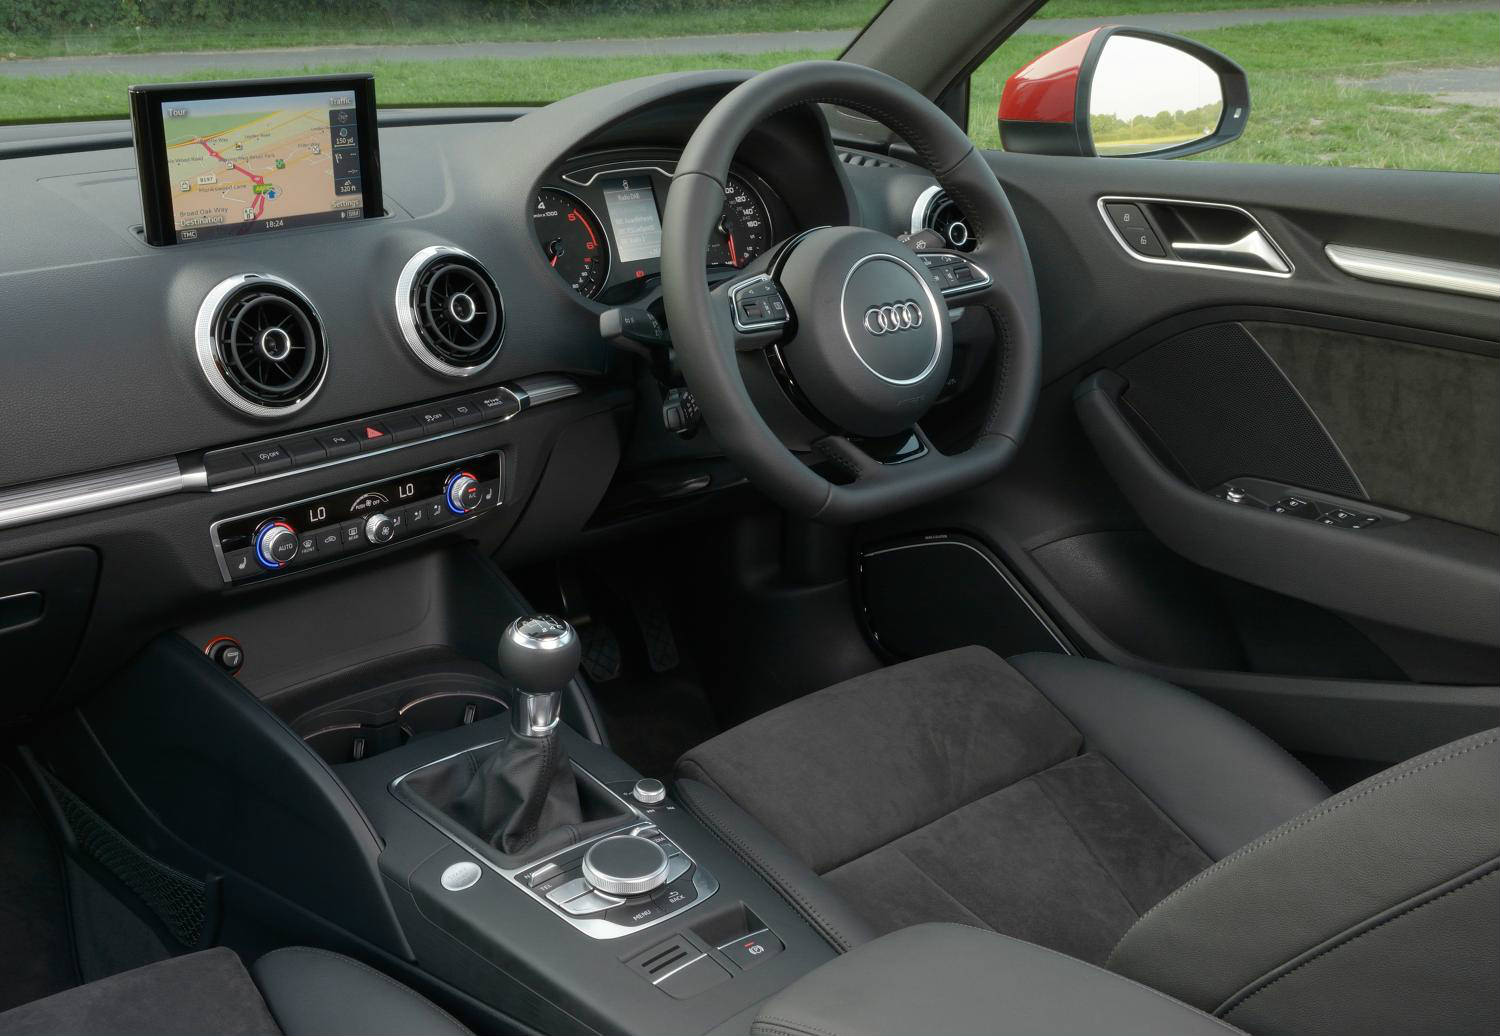 image of an audi a3 car interior